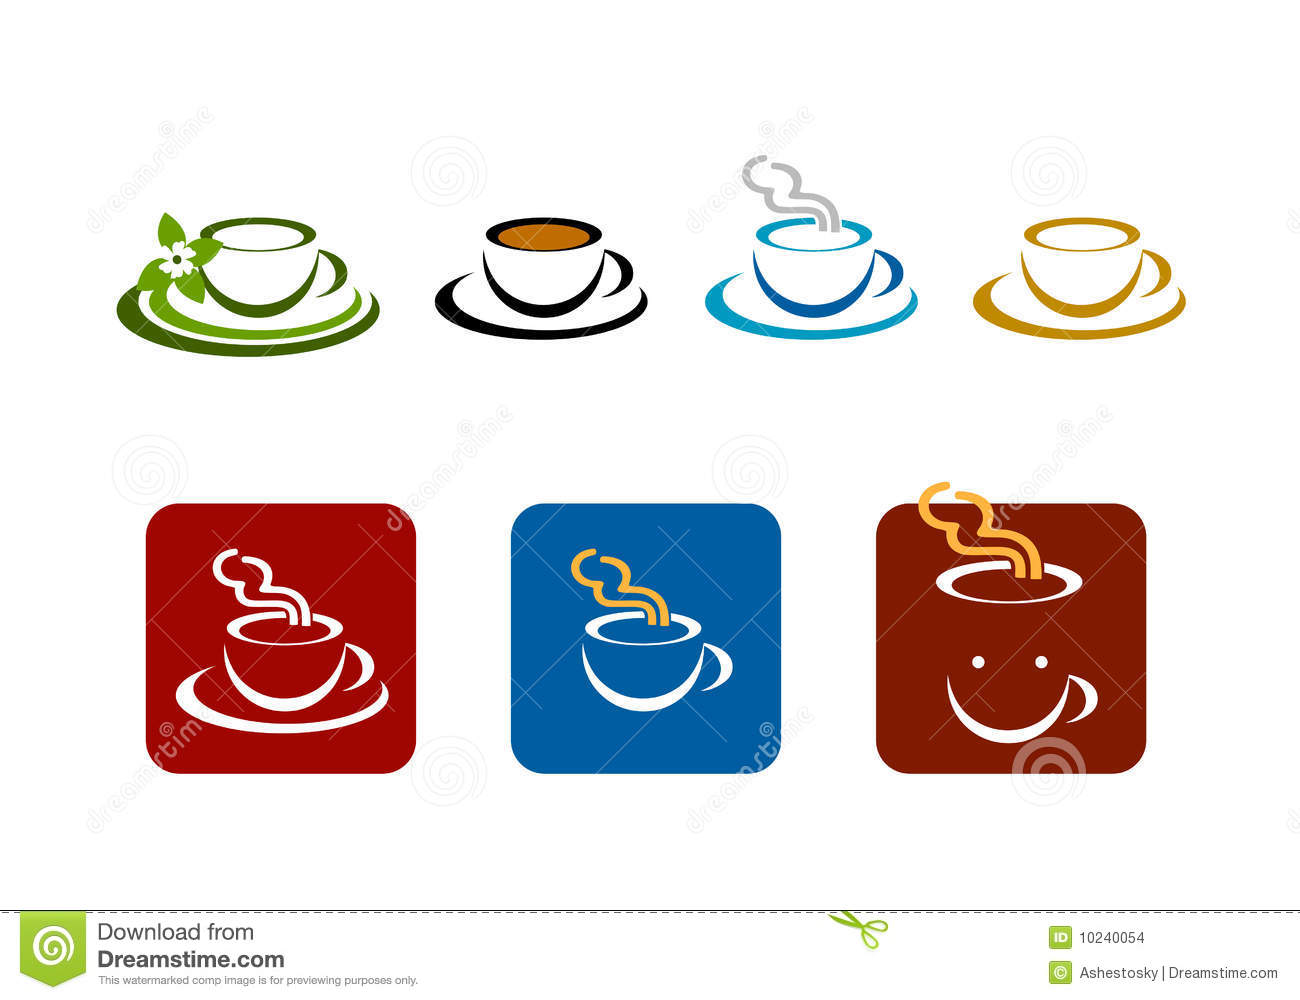 Coffee Manufacturers Logos : Coffee Bar Shop Vector Brands Logo Stock Images - Image: 10240054